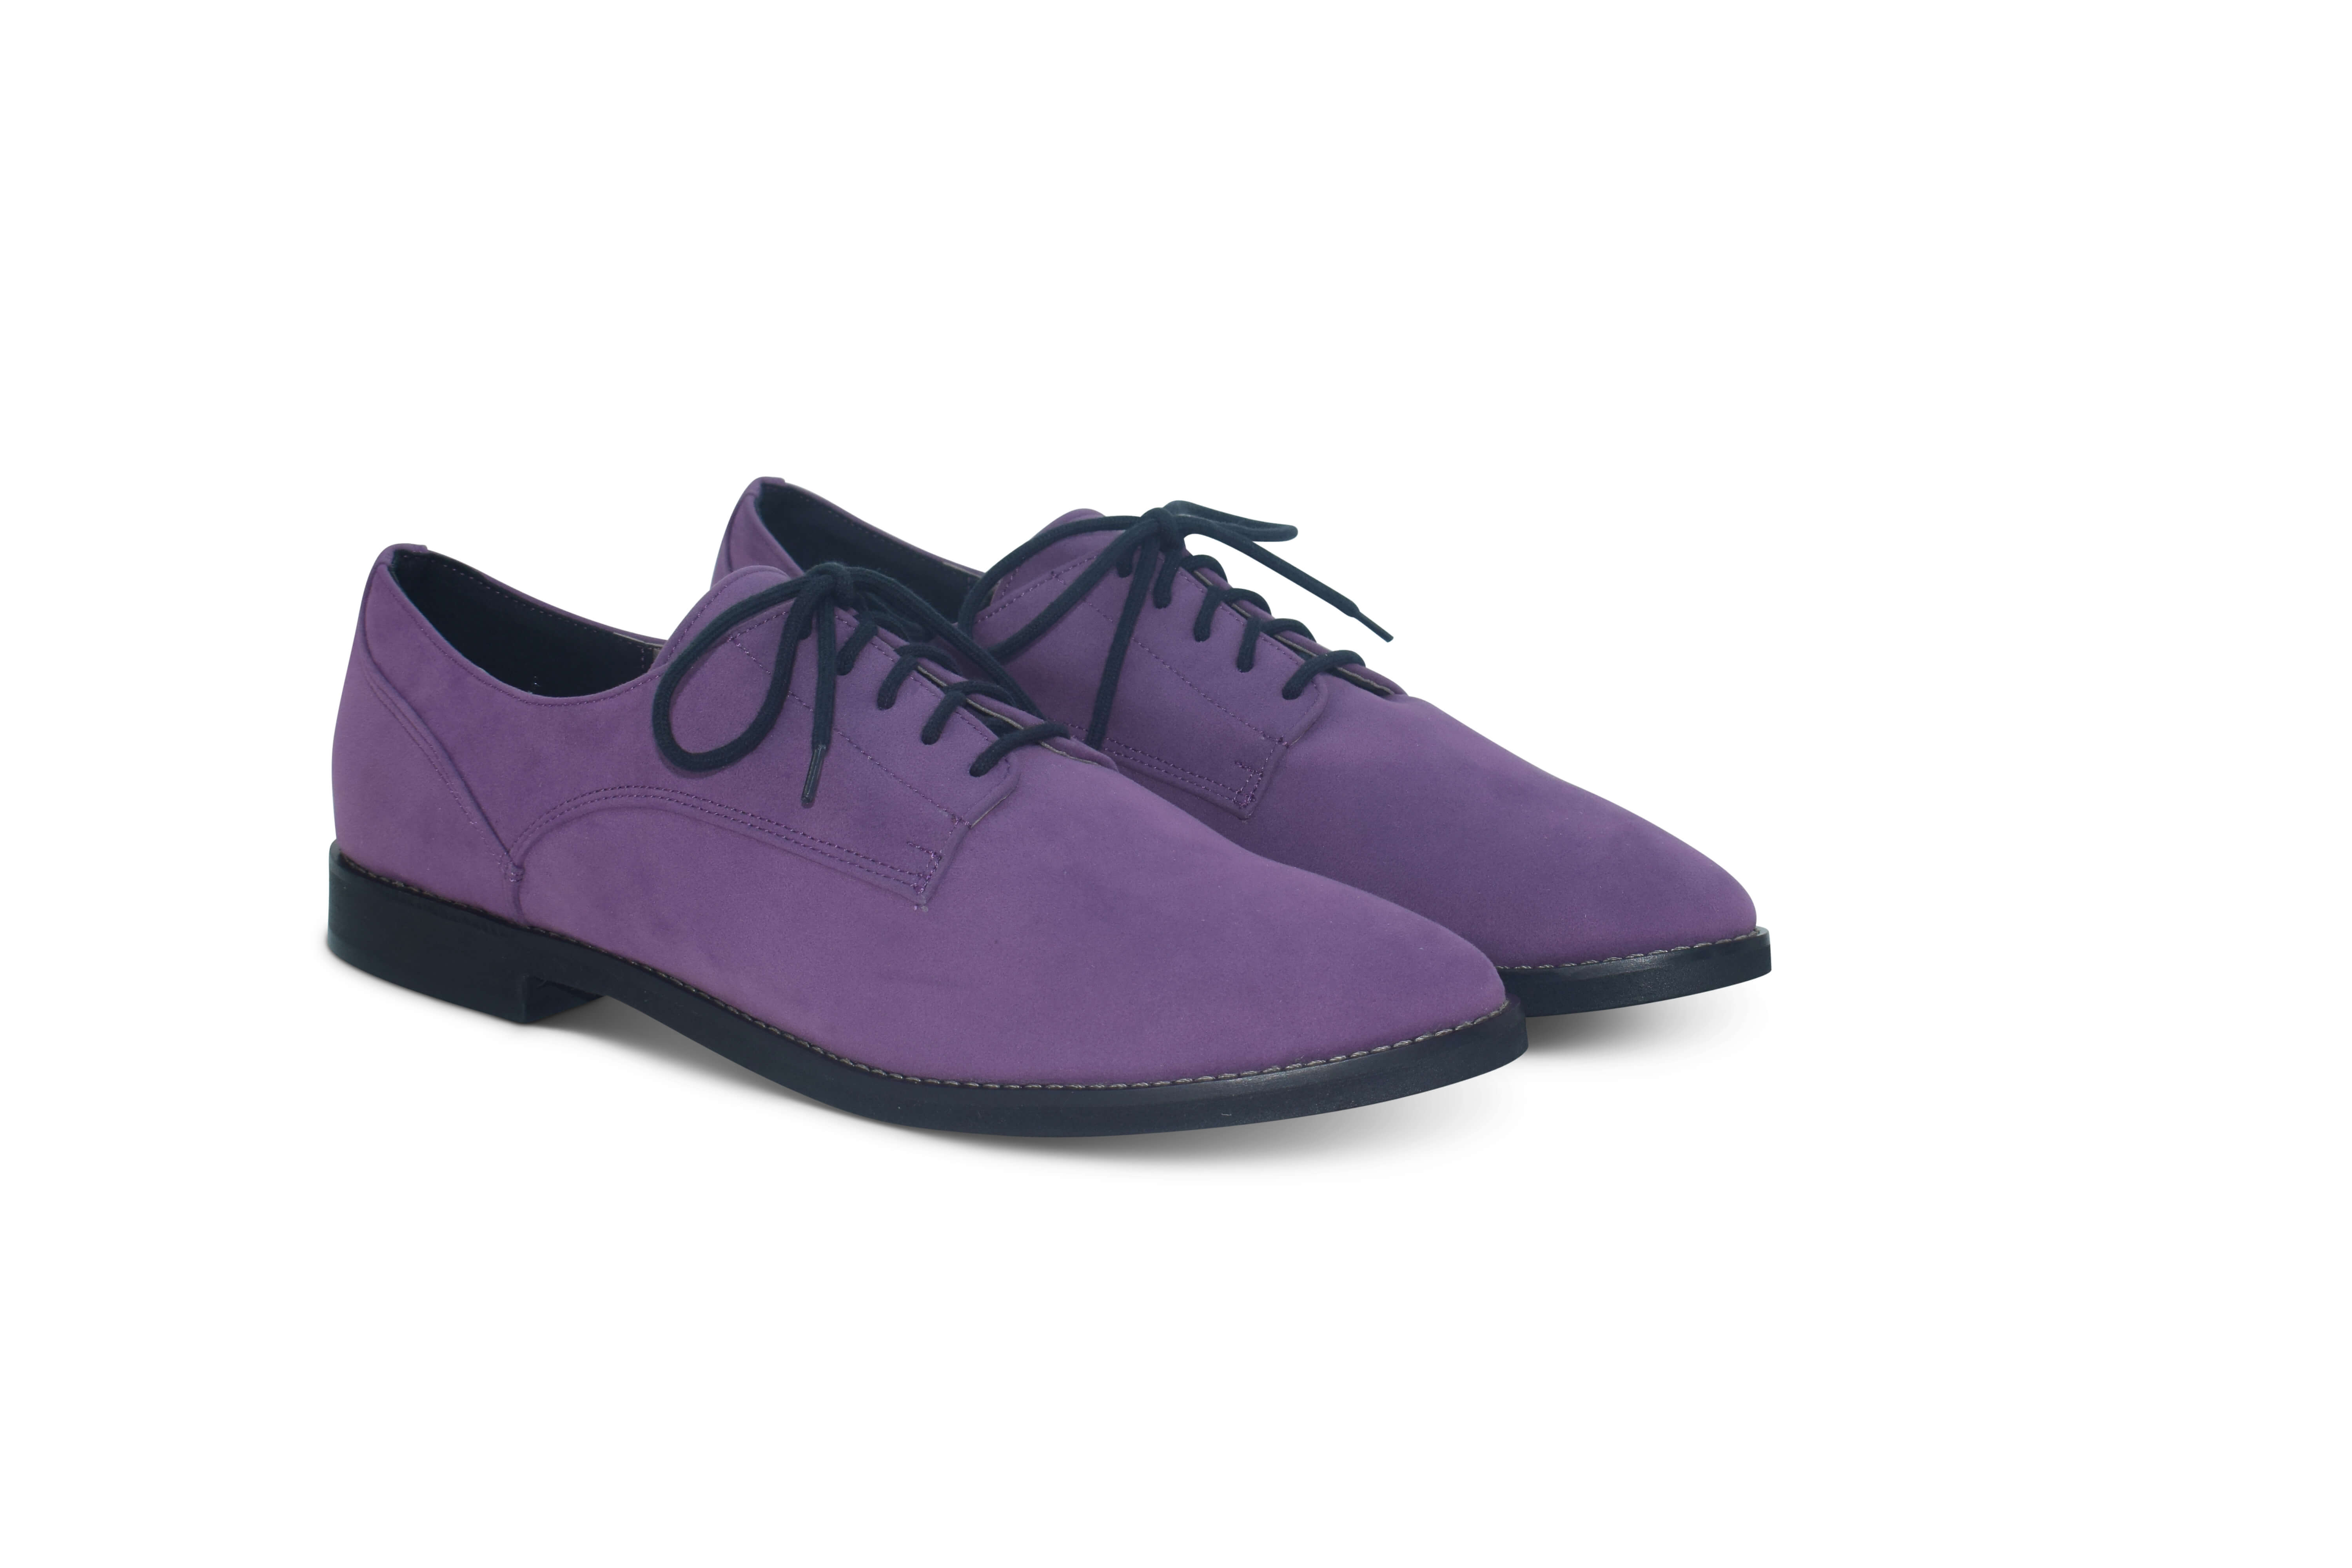 Harriett faux suede pointed toe Oxfords - purple